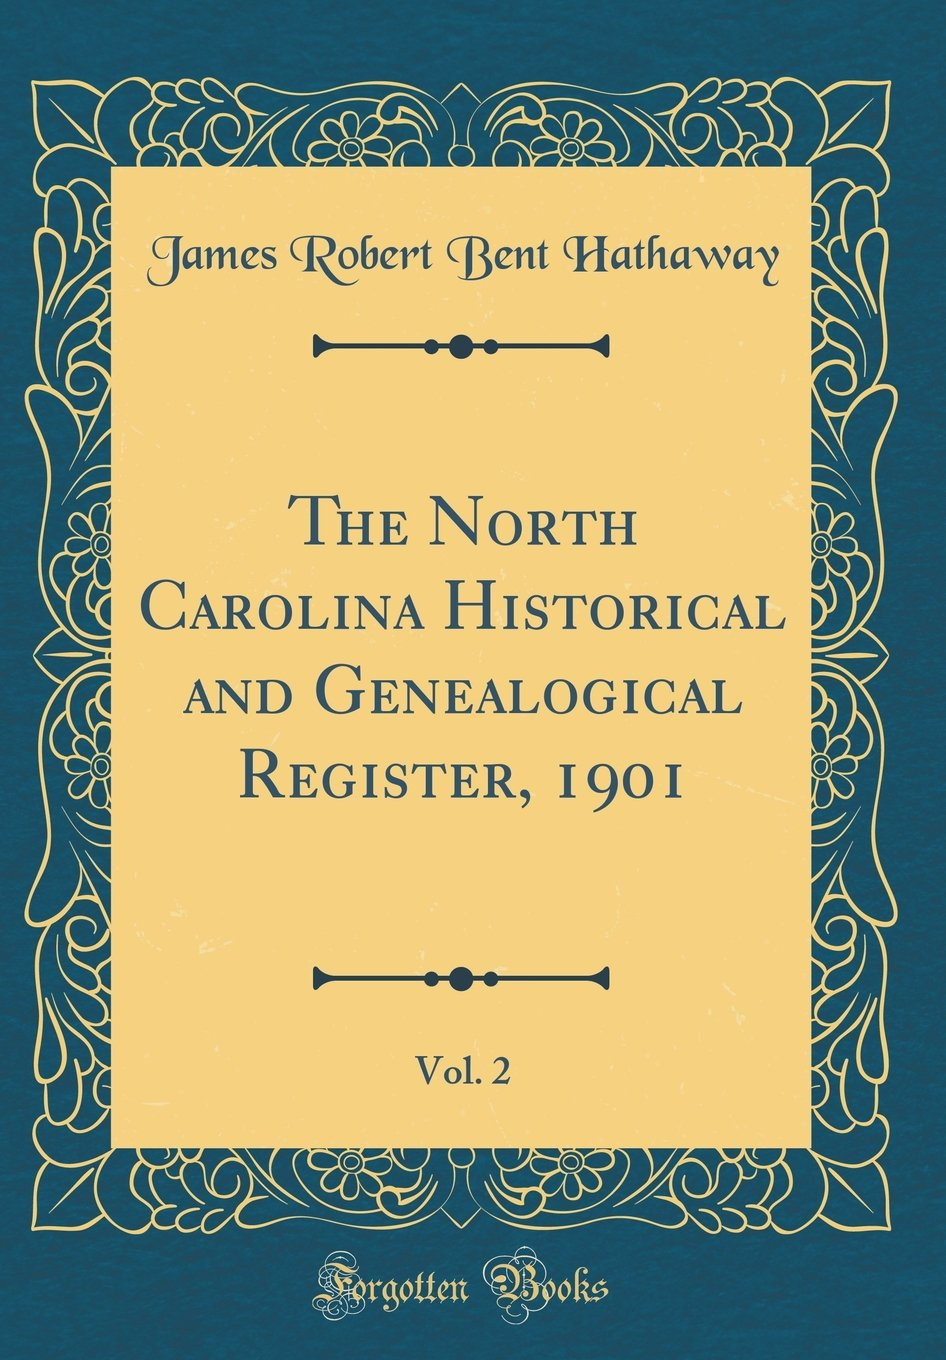 Download The North Carolina Historical and Genealogical Register, 1901, Vol. 2 (Classic Reprint) ebook